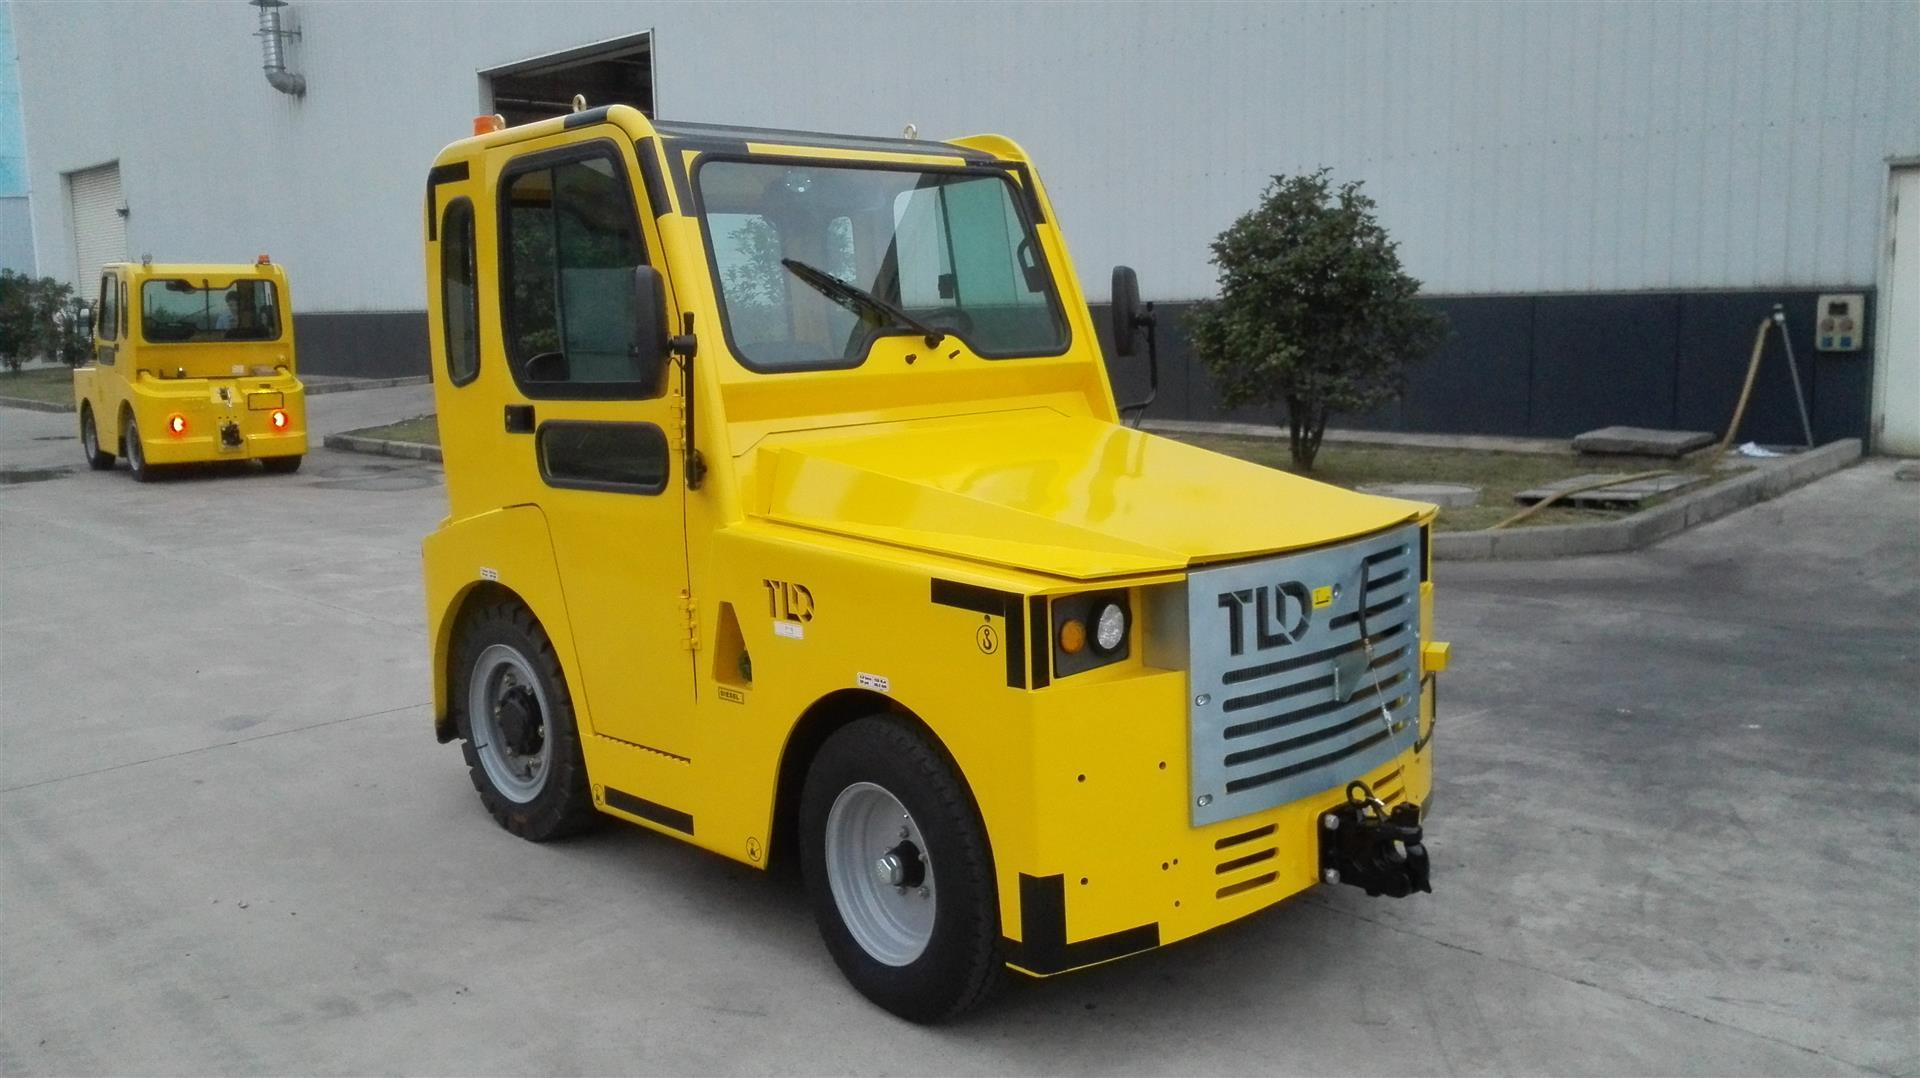 A small yellow vehicle with an enclosed cab.